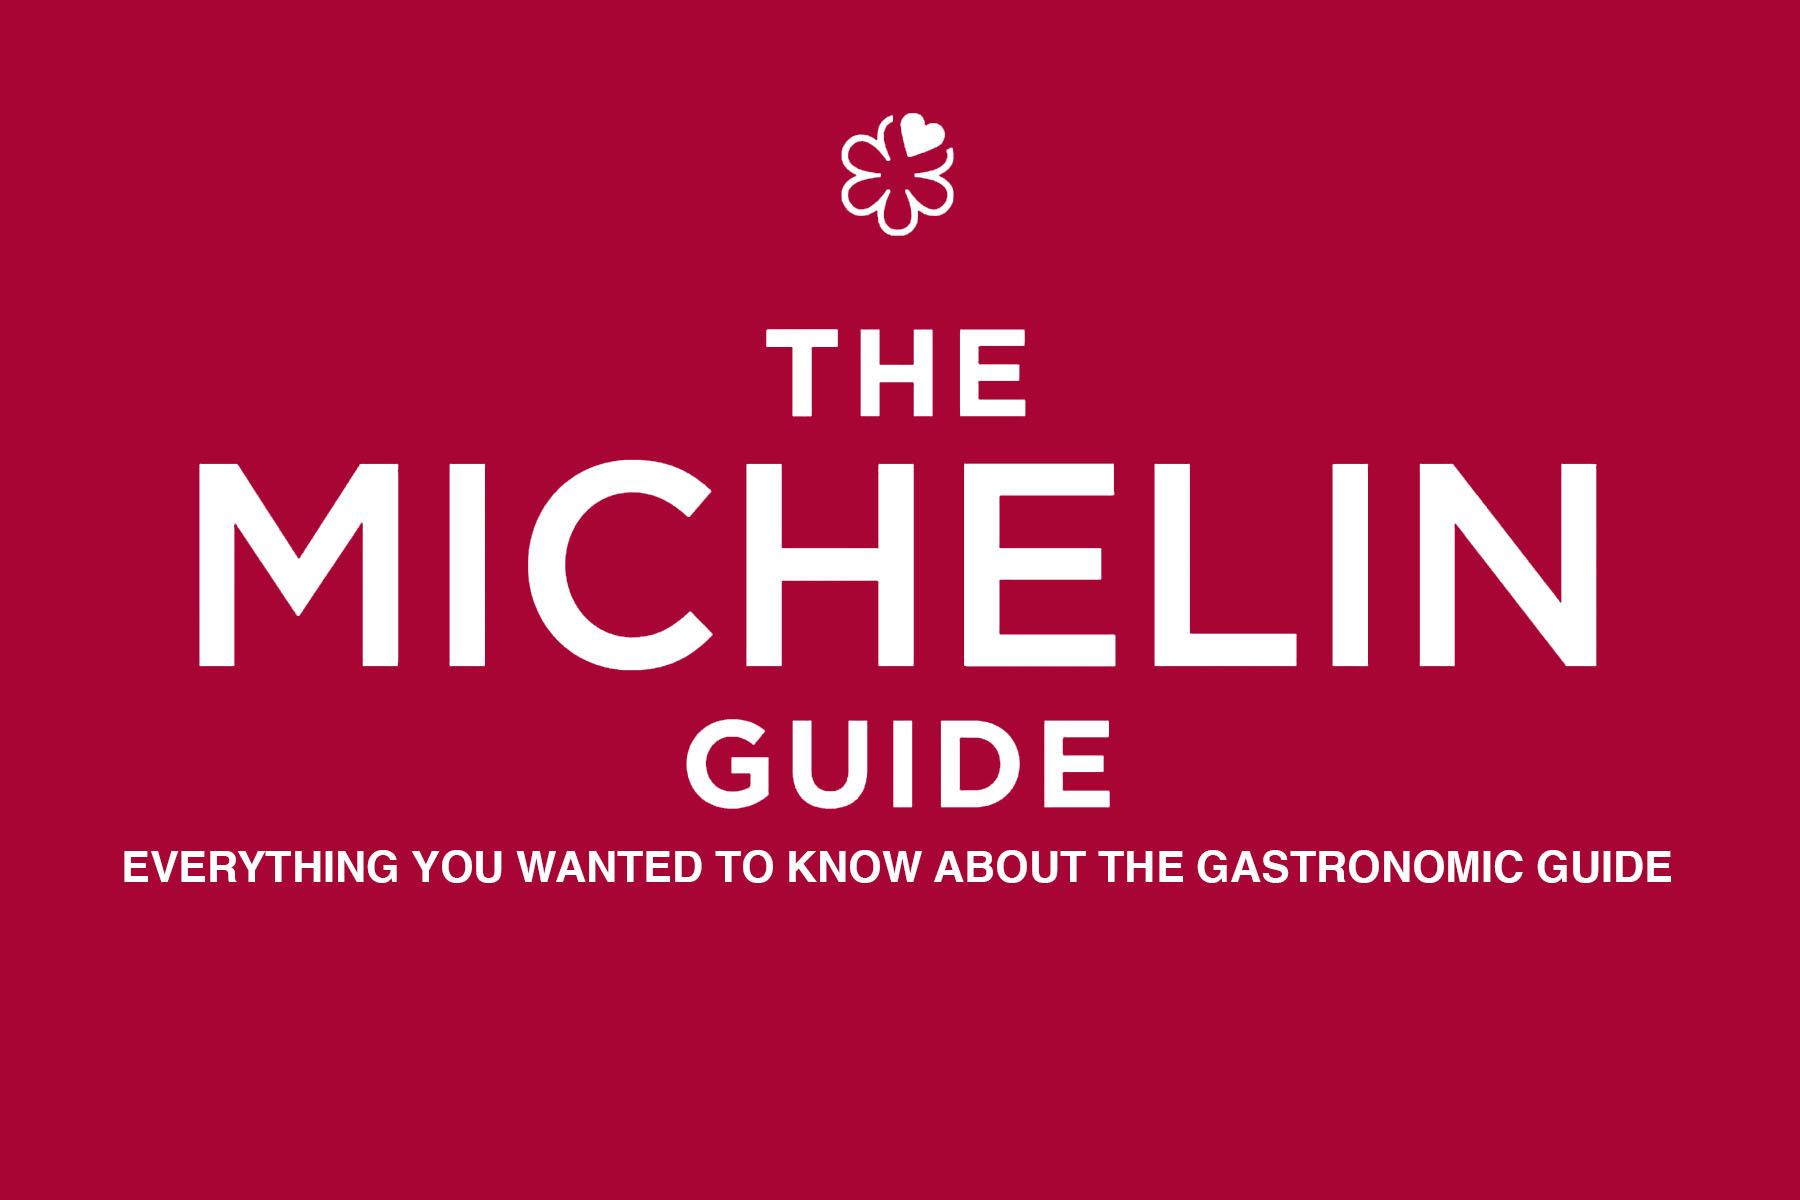 Michelin restaurant guide Slovenia